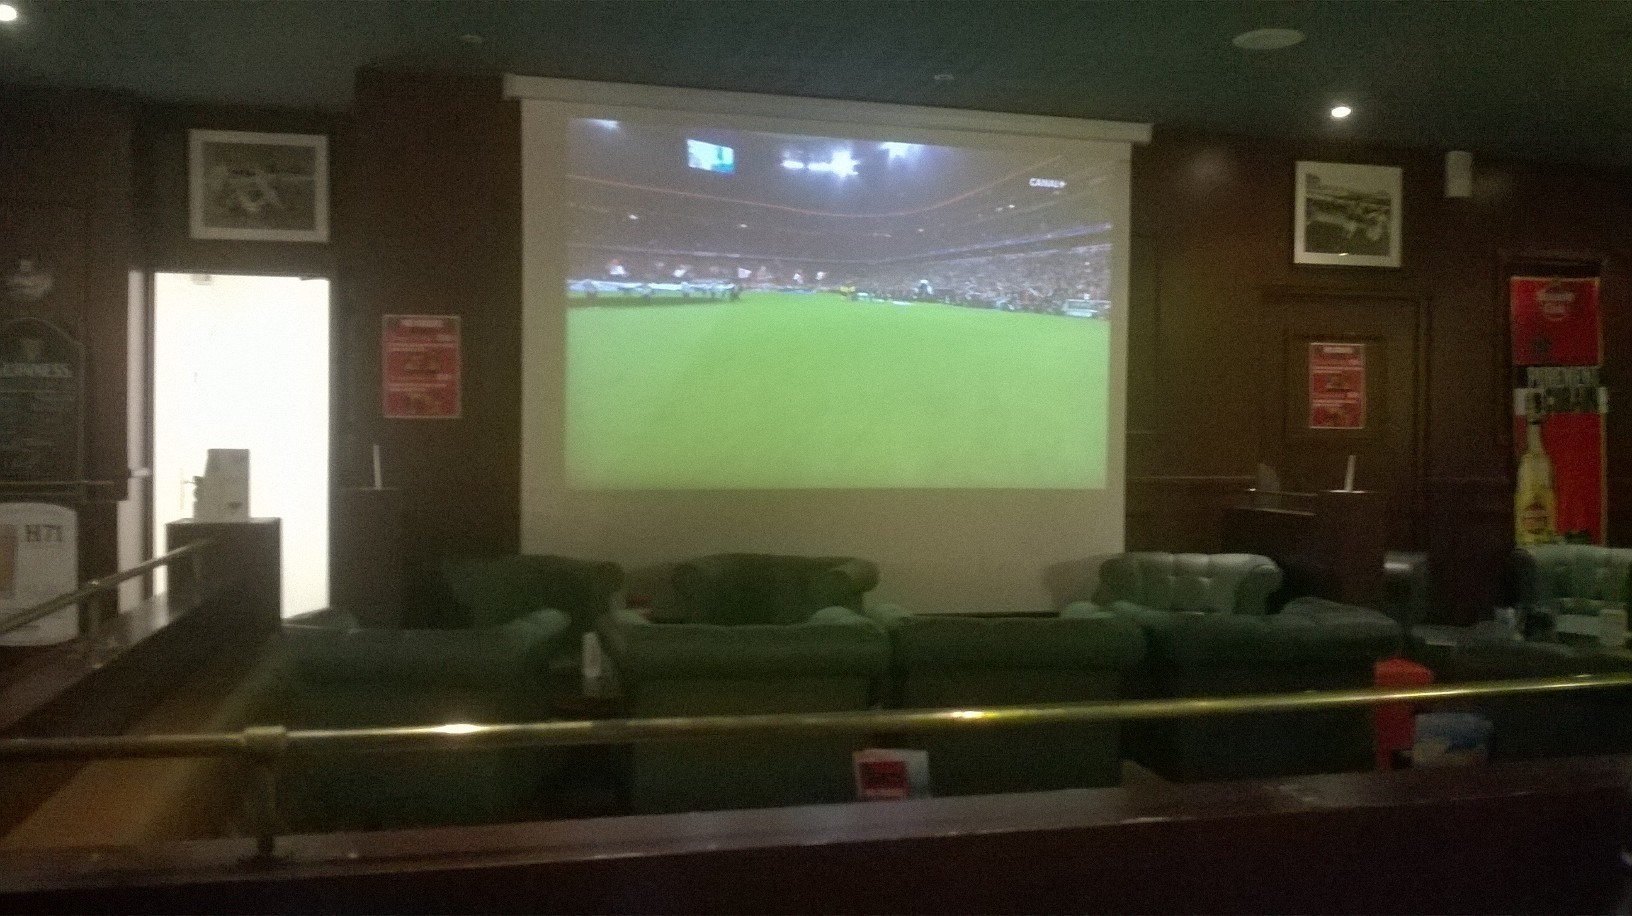 vannes-skellig-tv-at-bar-real-madrid-vs-bayern-apr17